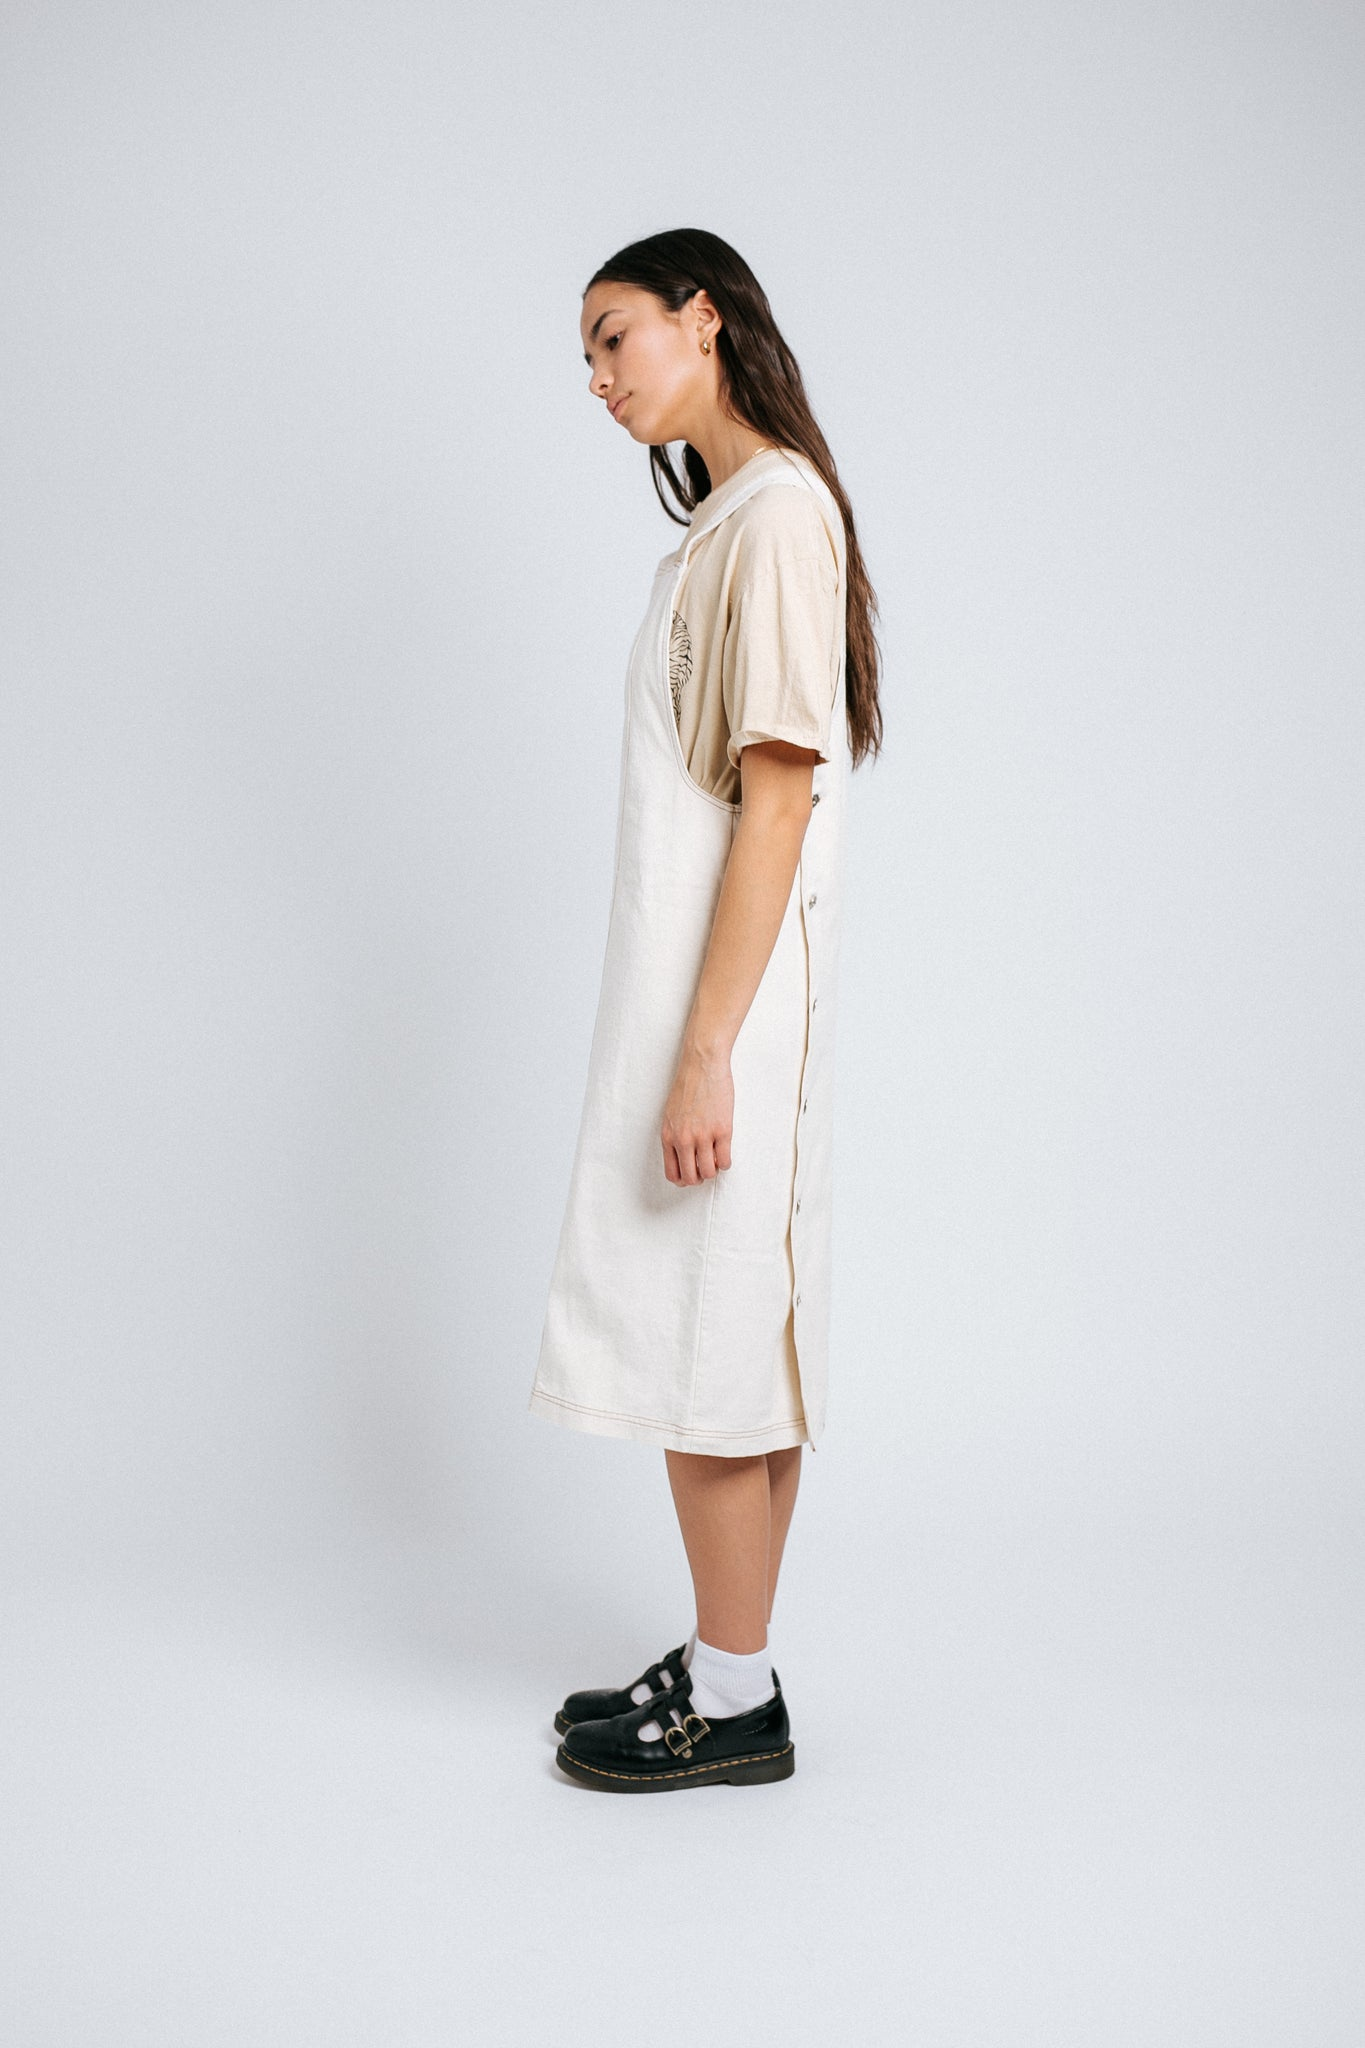 The Field Day Dress